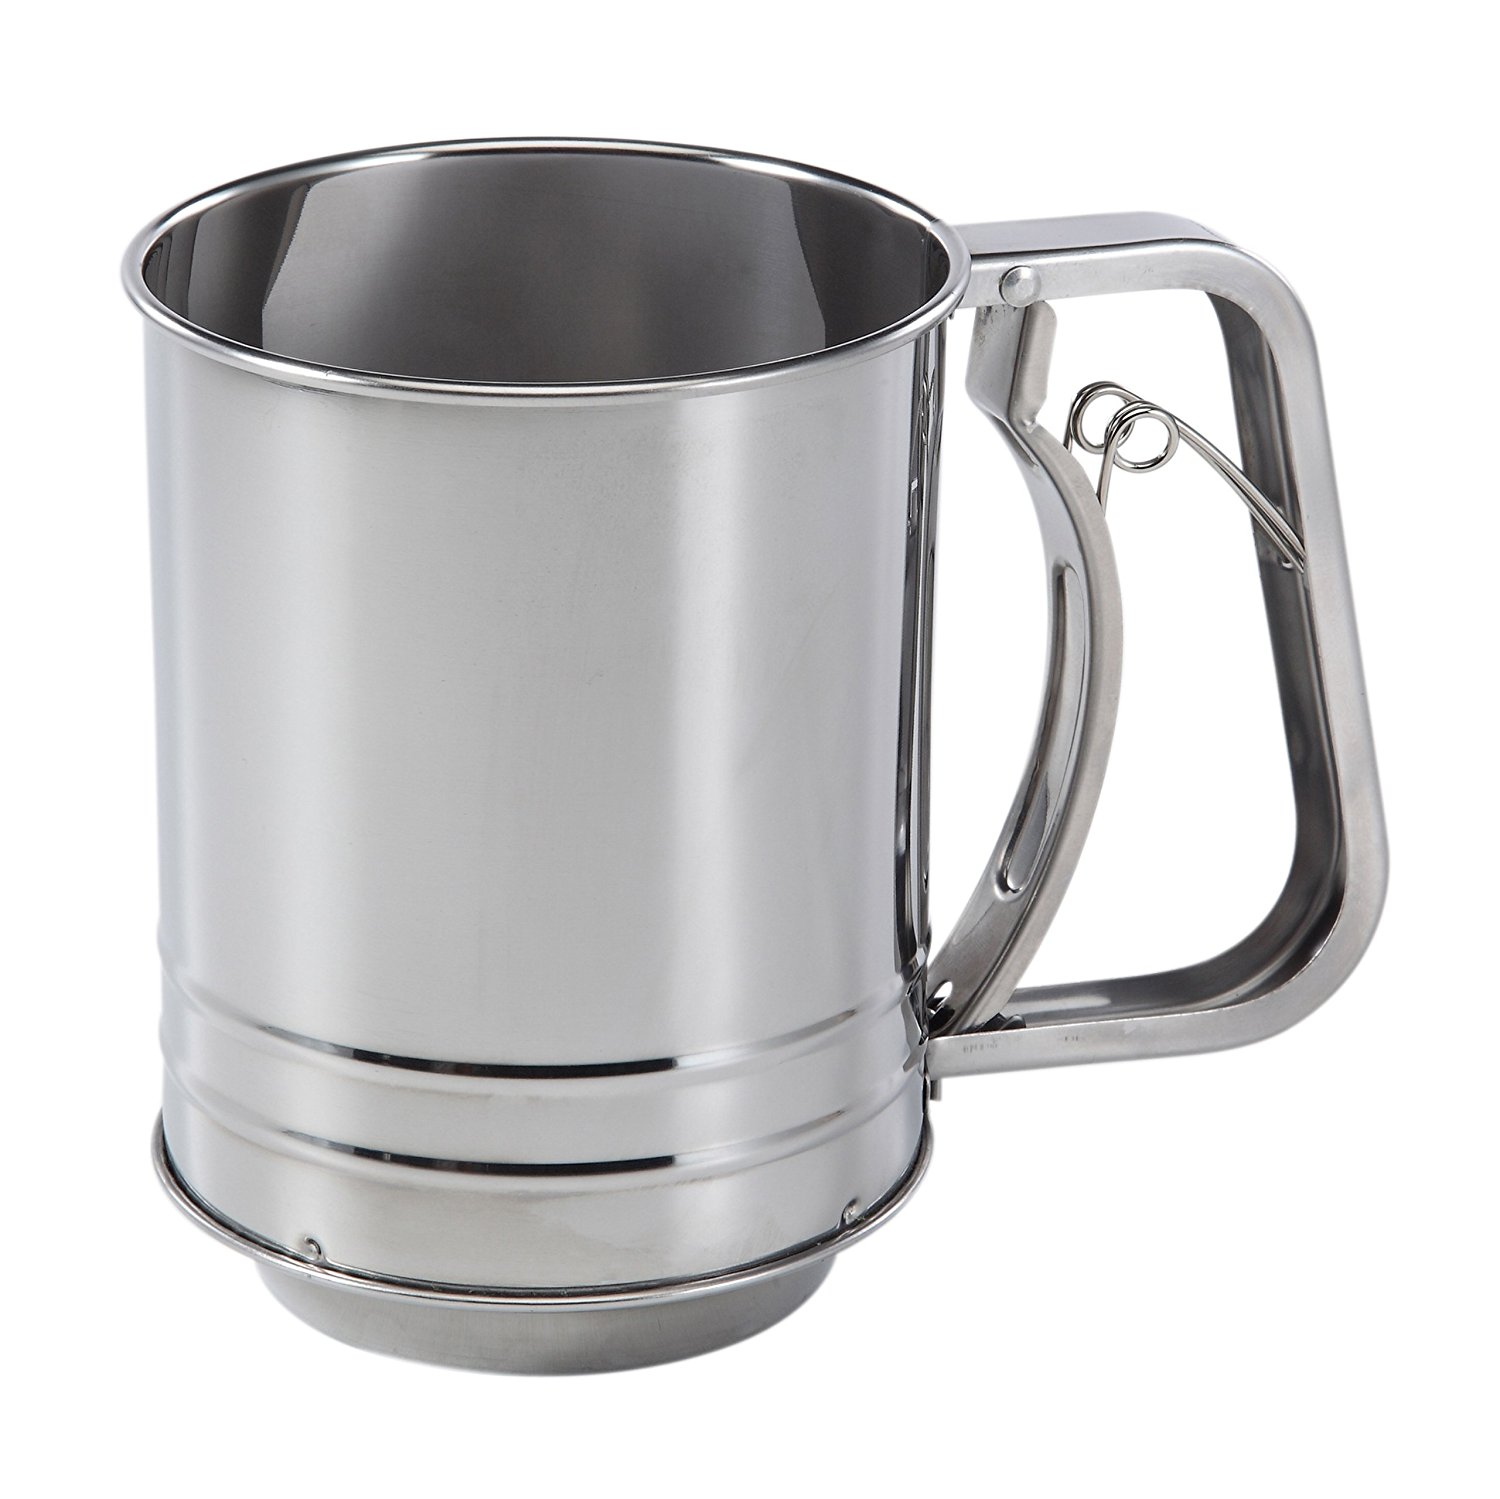 3-Cup Stainless Steel Flour Sifter Inquiries by email, Ship from USA,Brand Baker's Secret by